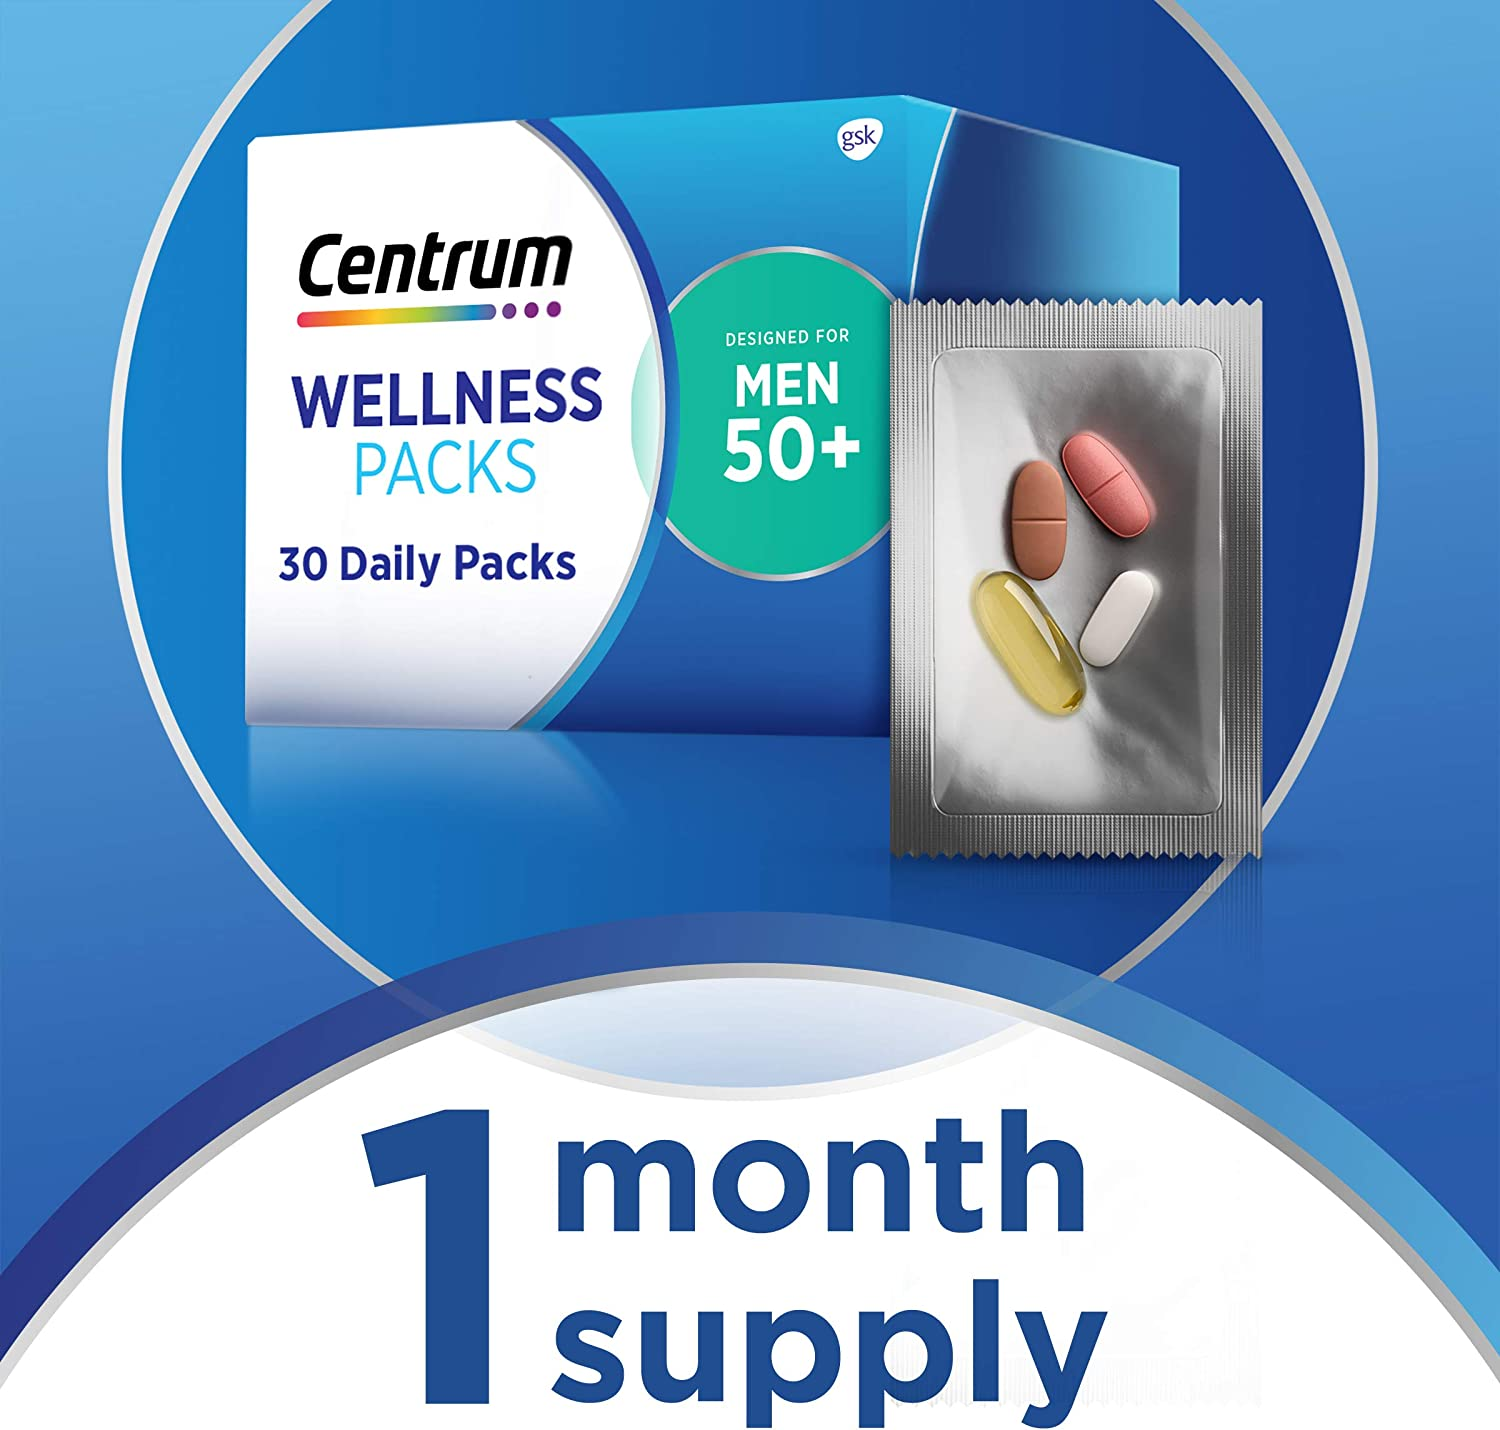 Centrum Wellness Packs Daily Vitamins for Men in Their 50s, Mens Vitamins with Complete Multivitamin, Calcium Carbonate 600mg with Vitamin D3, Fish Oil 1200mg with Omega-3, MSM 1000mg - 30 Packs